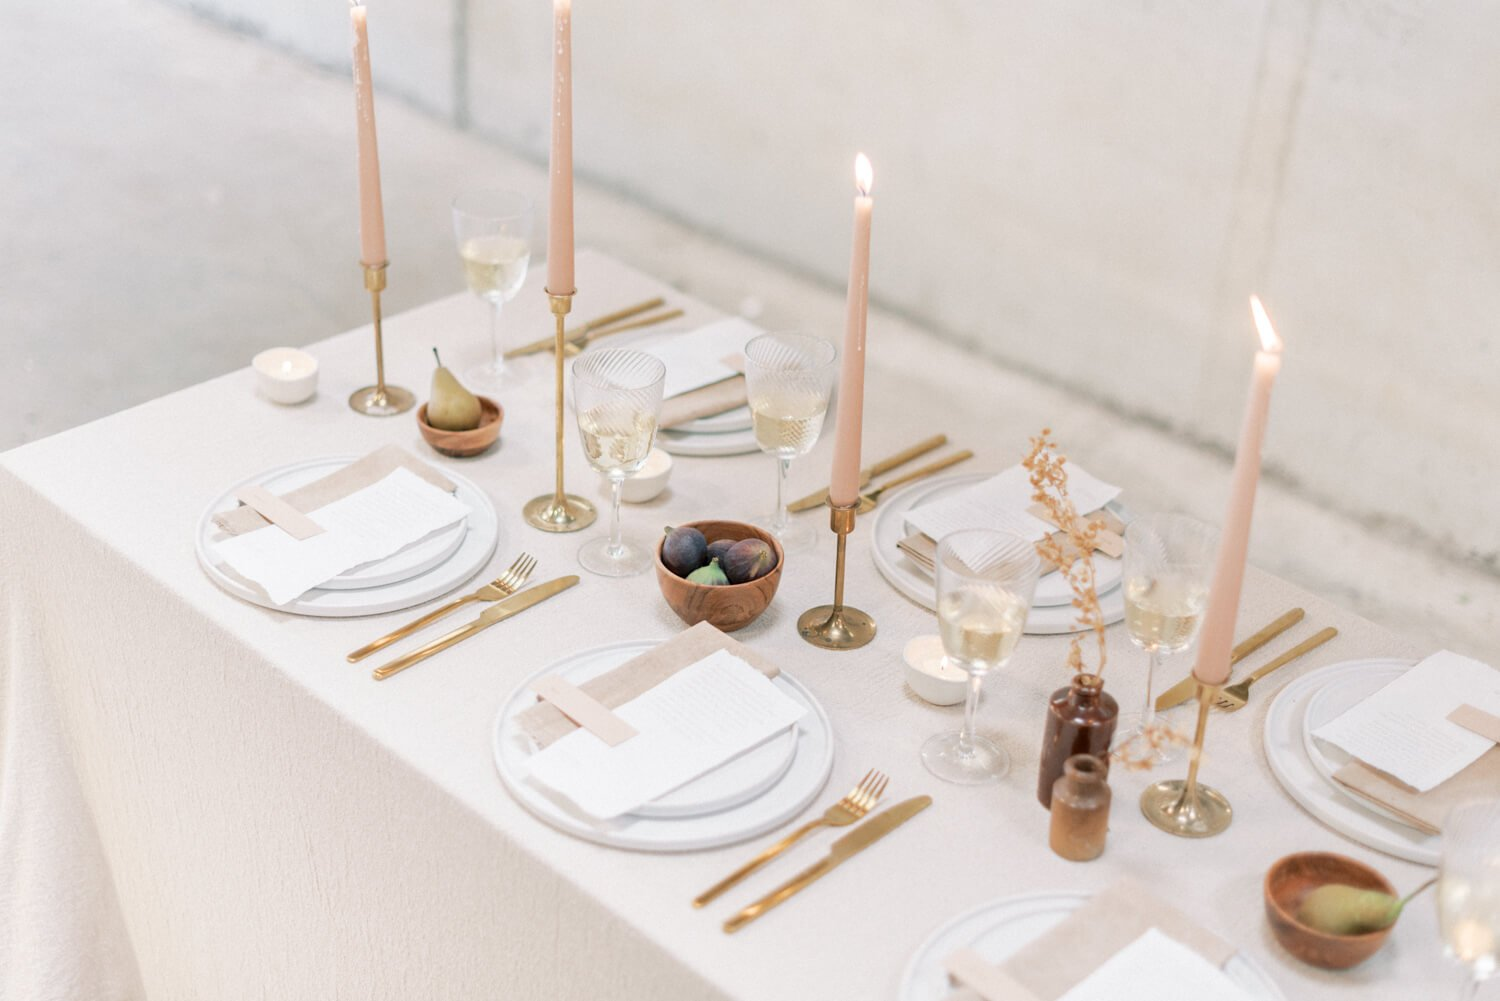 Wedding Photography FAQs In photo: English Countryside Autumn Wedding at a Flower Farm | Photos and Text by Cristina Ilao Photography | In photo: minimalist destination wedding table arrangement with brass candlesticks and neutral colour themed crockery